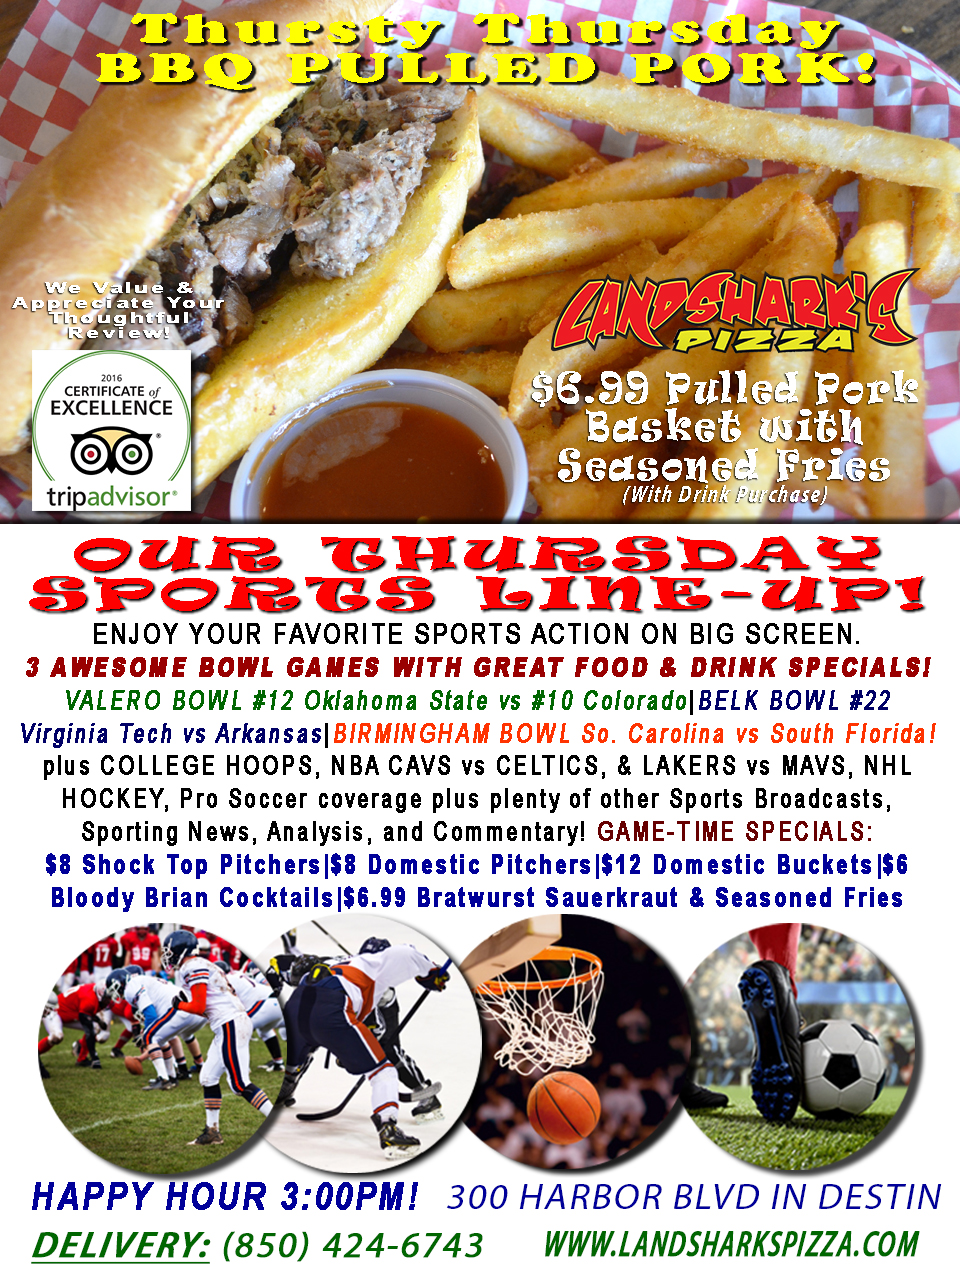 HAVE MERCY THAT'S GOOD! $6.99 BBQ Basket, 3 AWESOME COLLEGE FOOTBALL BOWL GAMES, Hockey, NBA & NCAA Hoops!